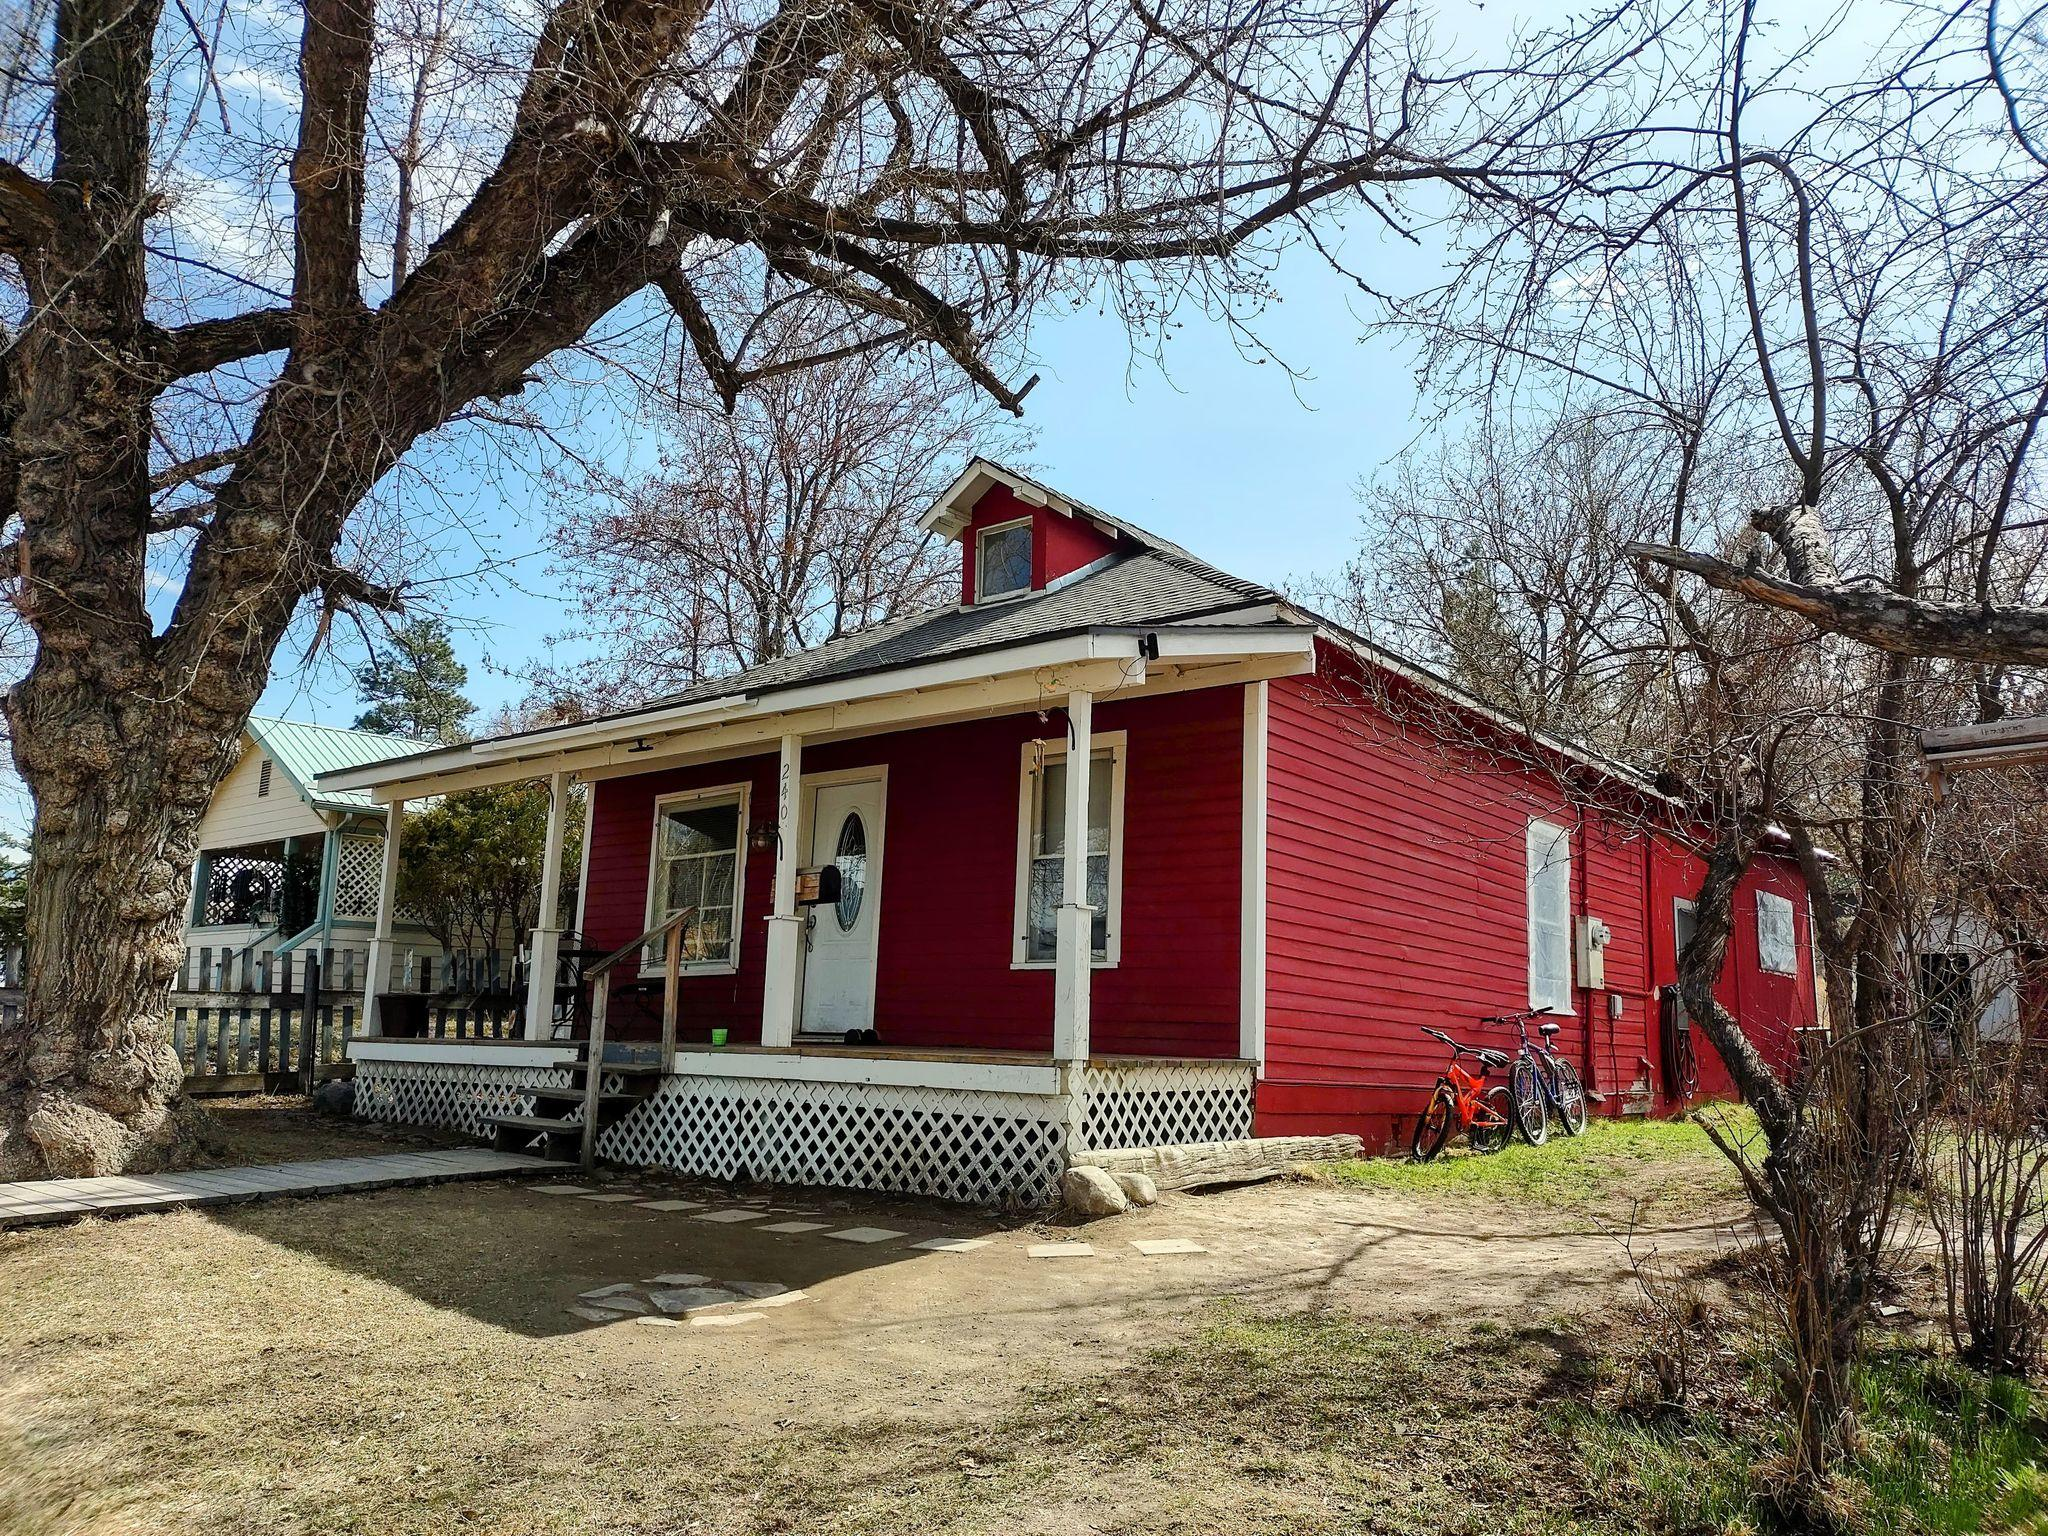 **Highest/best by Thursday at 5 pm. Response by Saturday , 5 pm.**AFFORDABLE and ADORABLE!  From the charming farmhouse sink and cabinets in the kitchen, to the warmth of the pellet stove in the living room, the main floor laundry room, the soft color choices, the 3 bedrooms and large full bathroom, the versatile loft space, and the cozy front porch with mountain views; you will feel right at home.  The two sheds in the back yard offer lots of storage with room to build a garage or for off-street parking.  The lot next door is also for sale and purchasing both would be a great option for a larger yard with extra set of full utilities(city water/sewer, electric meter) for RV guests or as an investment to put a mobile home on for extra income. See MLS # 22104819.